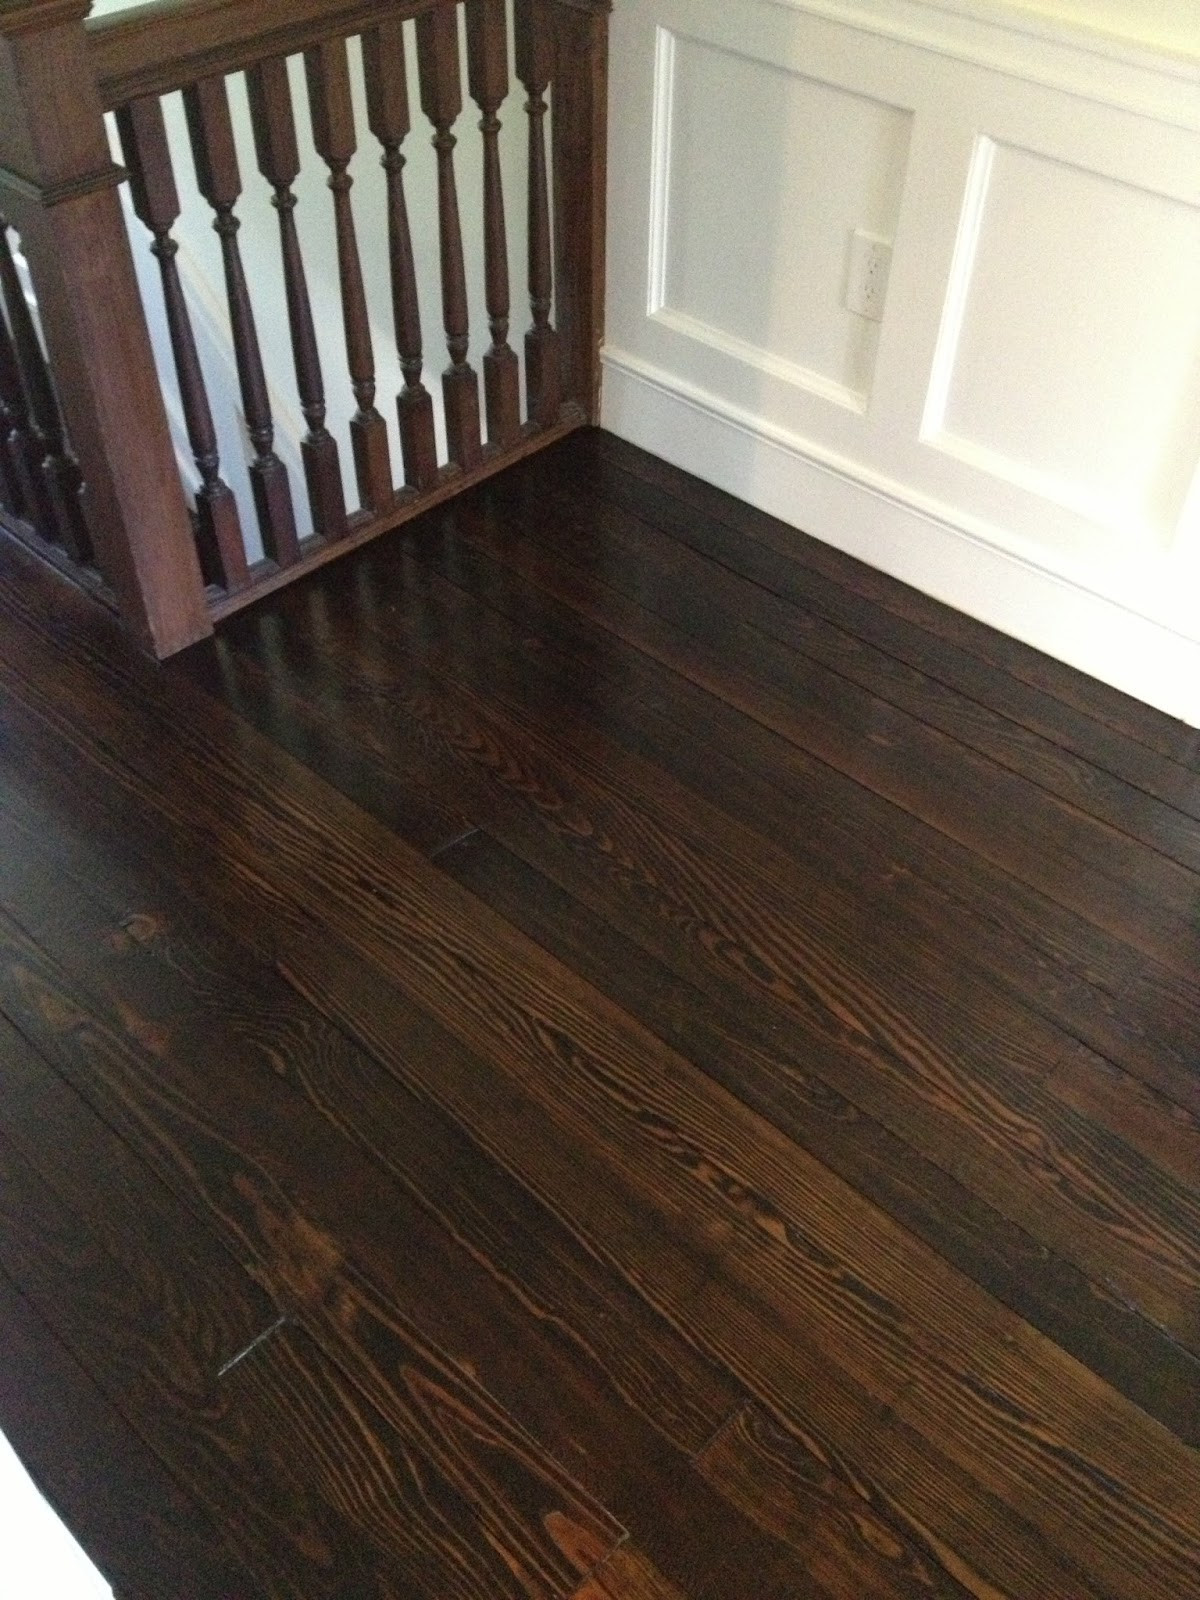 unfinished hardwood flooring nashville of wood floor jacobean wood floor stain intended for images of jacobean wood floor stain